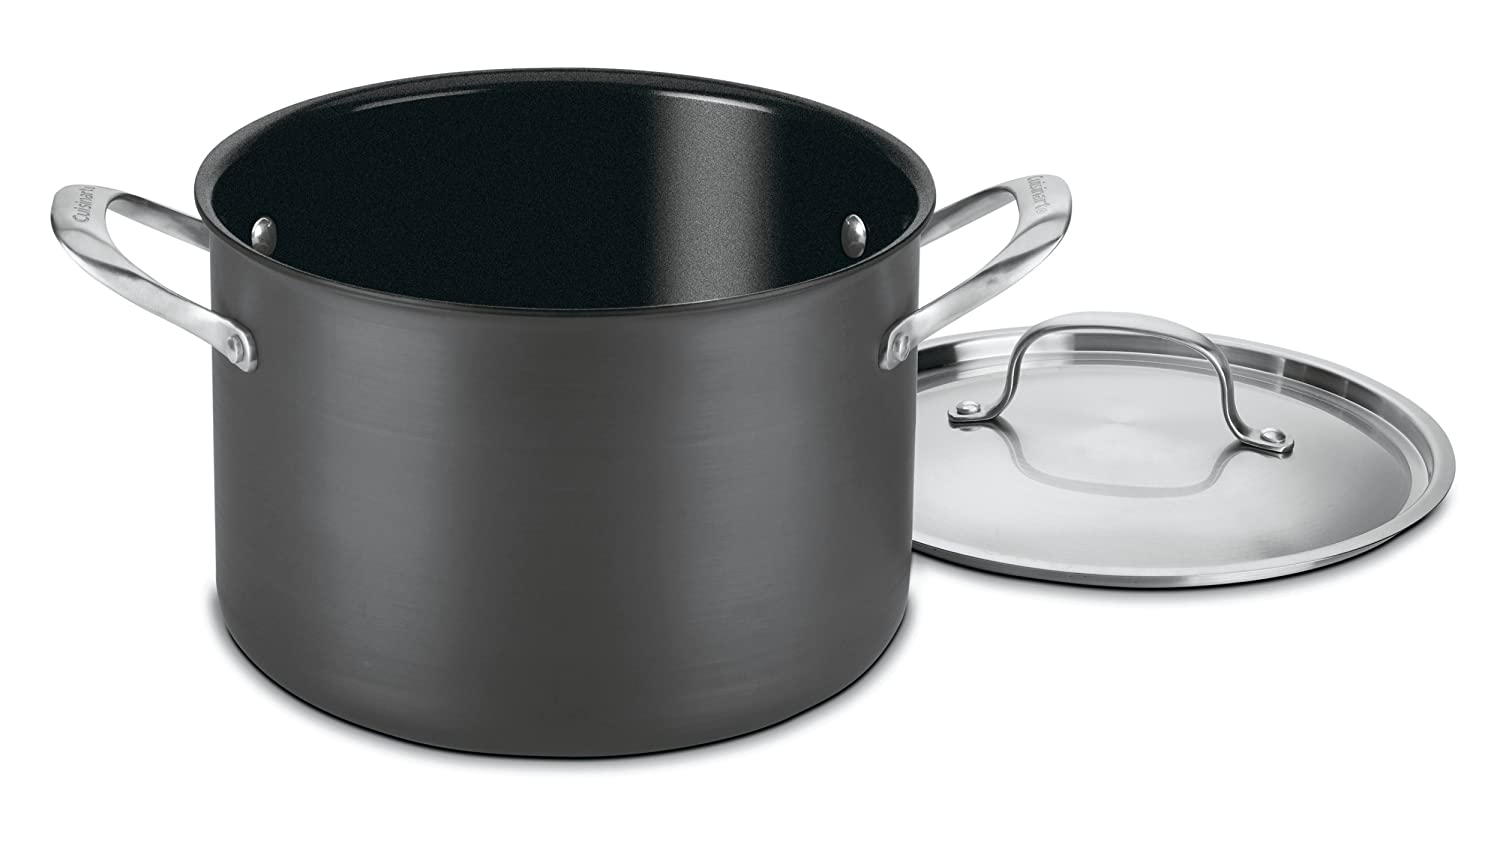 Cuisinart GG66-24 GreenGourmet Hard-Anodized Nonstick 8-Quart Stock Pot with Cover